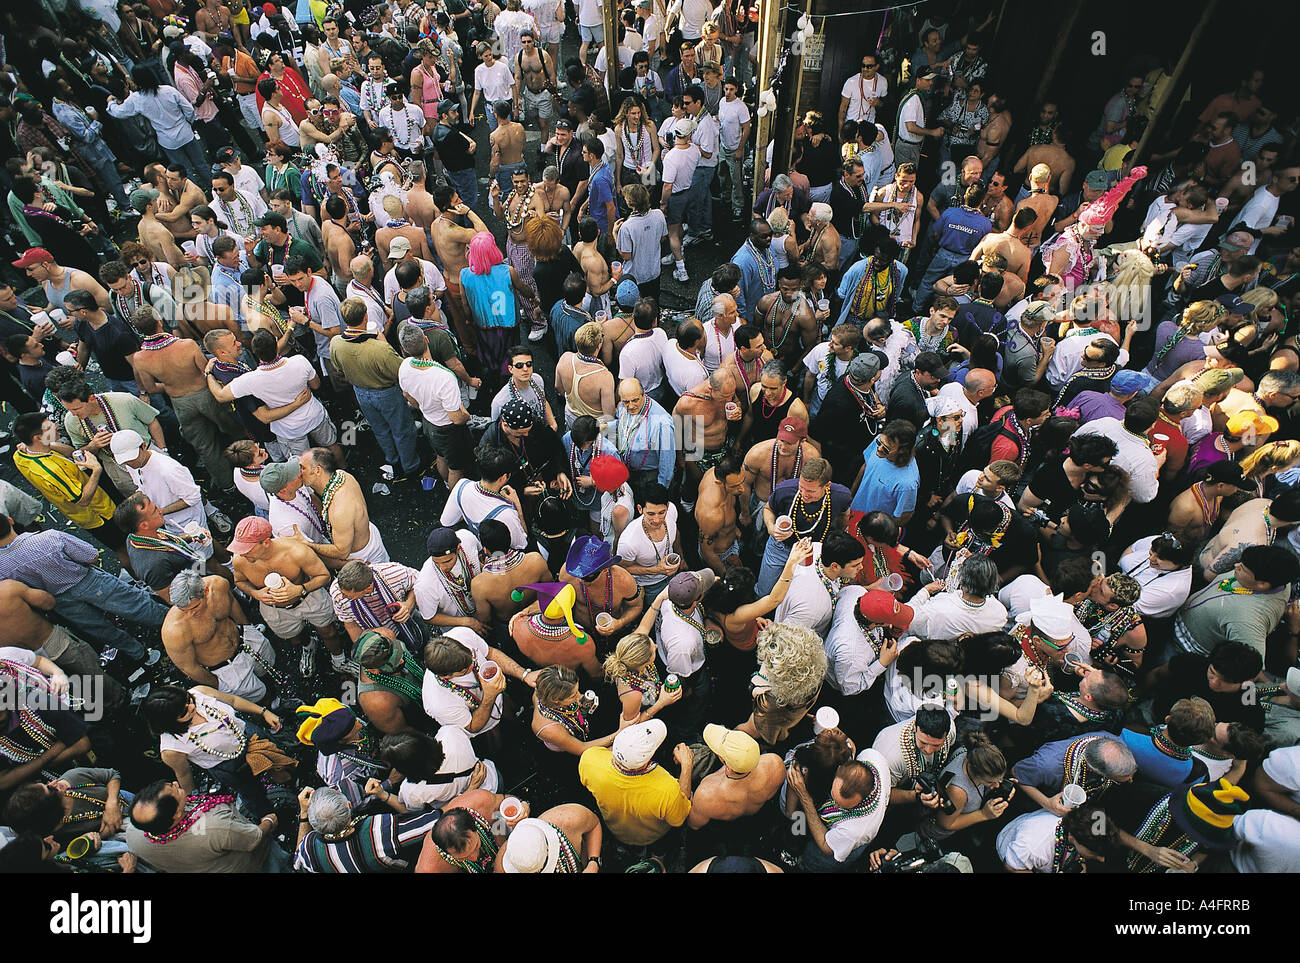 Crowd in Bourbon Street in Mardi Gras , New Orleans. - Stock Image